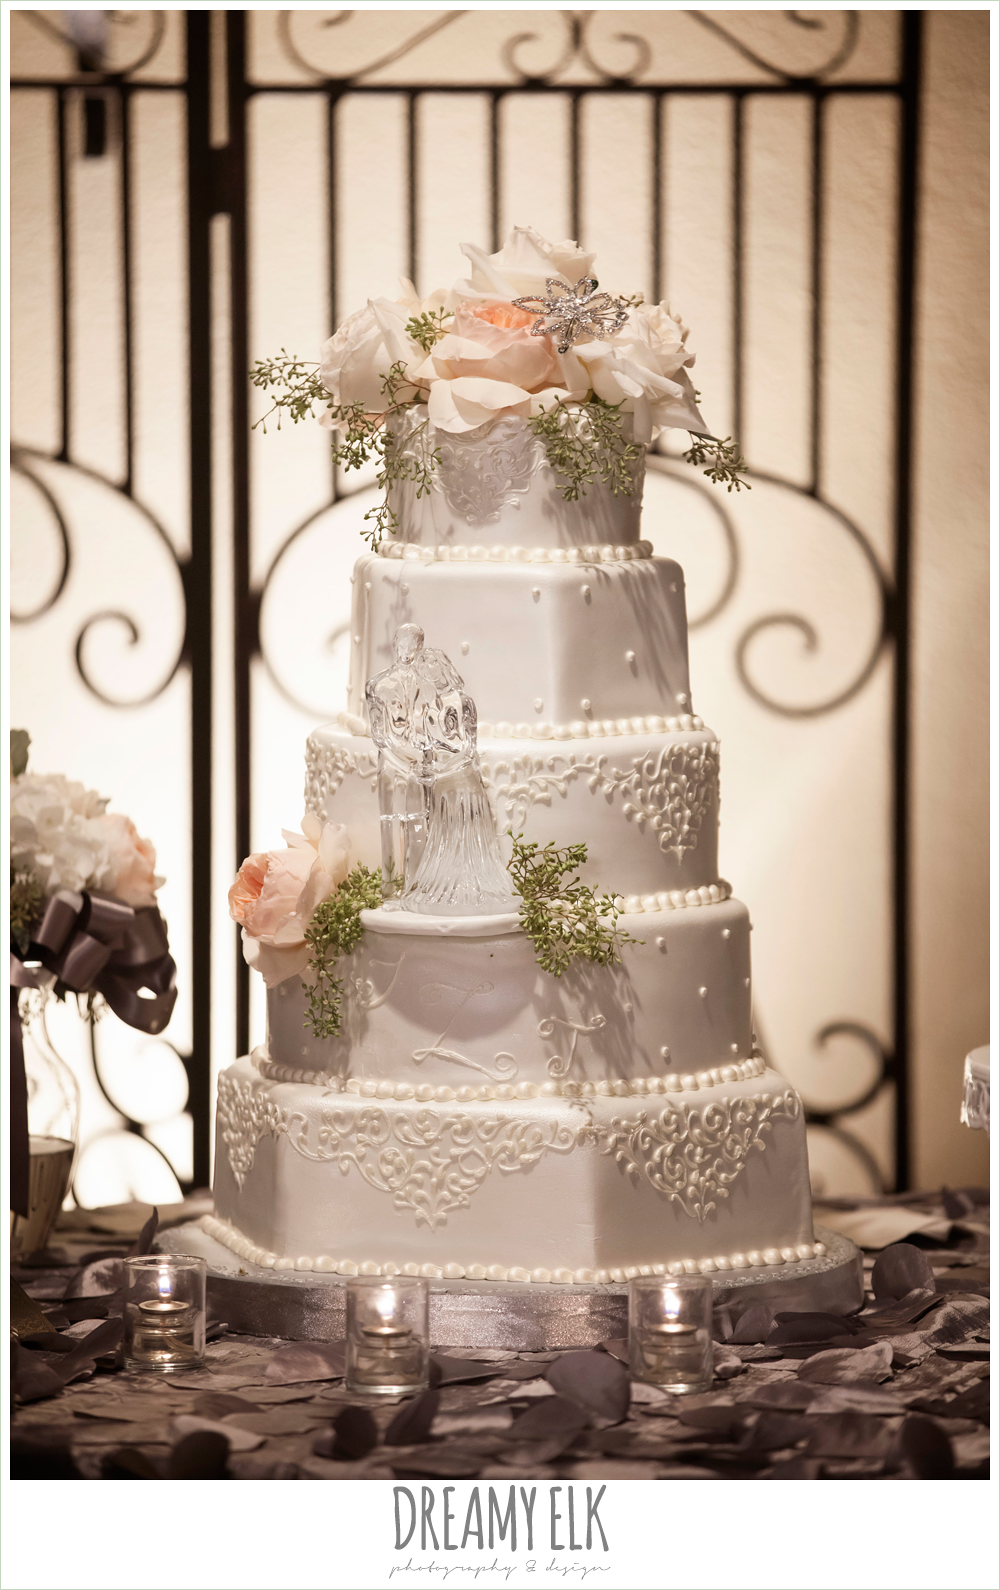 five tier wedding cake, briscoe manor, houston winter wedding photo {dreamy elk photography and design}